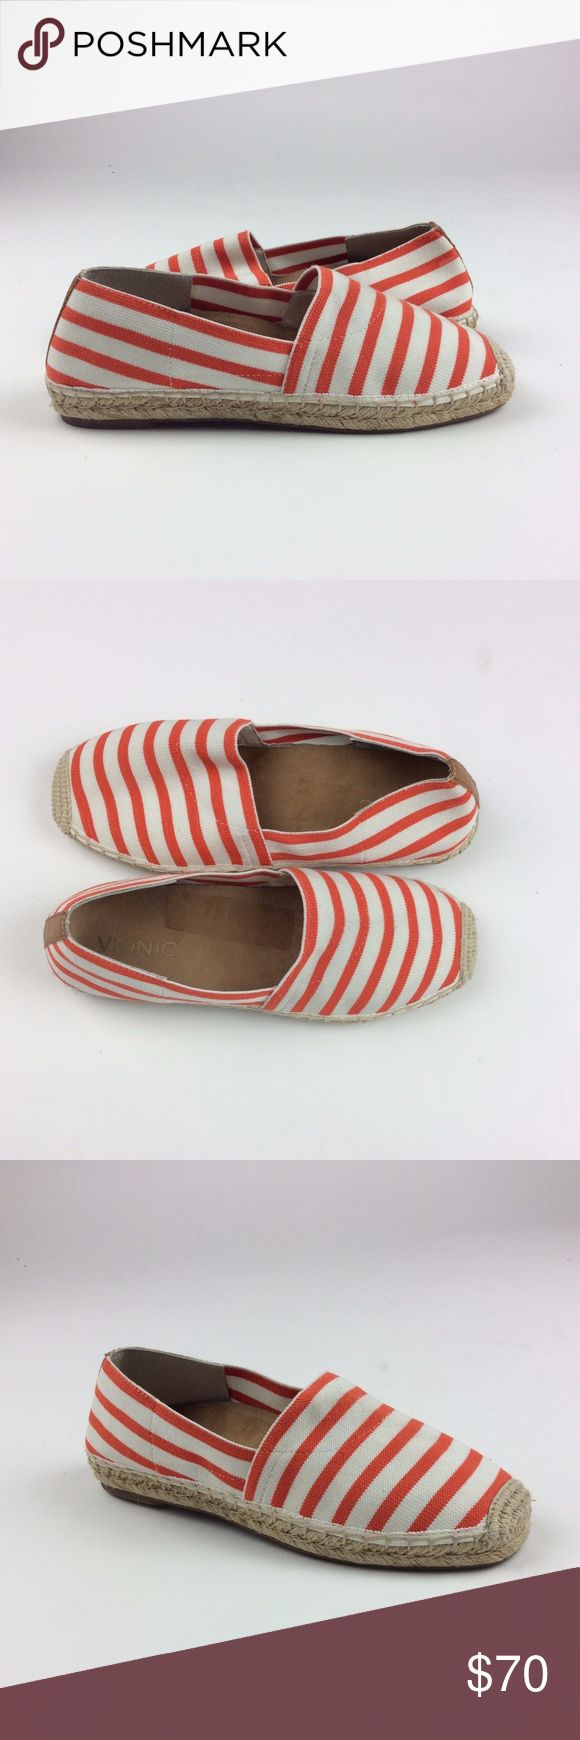 Vionic  Women's Coral Striped Stretch Gore upper The Vionic Coast Valeri espadrille flat features a jute-wrapped base and a stretch textile upper in summer-ready coral stripes. Your new go-to style for warm weather now has all the support you know and love from Vionic. Coral Striped Stretch Gore uppers. Genuine jute-wrapped base. Removable Microfiber Wrapped EVA footbed. Biomechanically designed to hug your arches Orthaheel Technology helps support natural alignment from the ground up. TR…